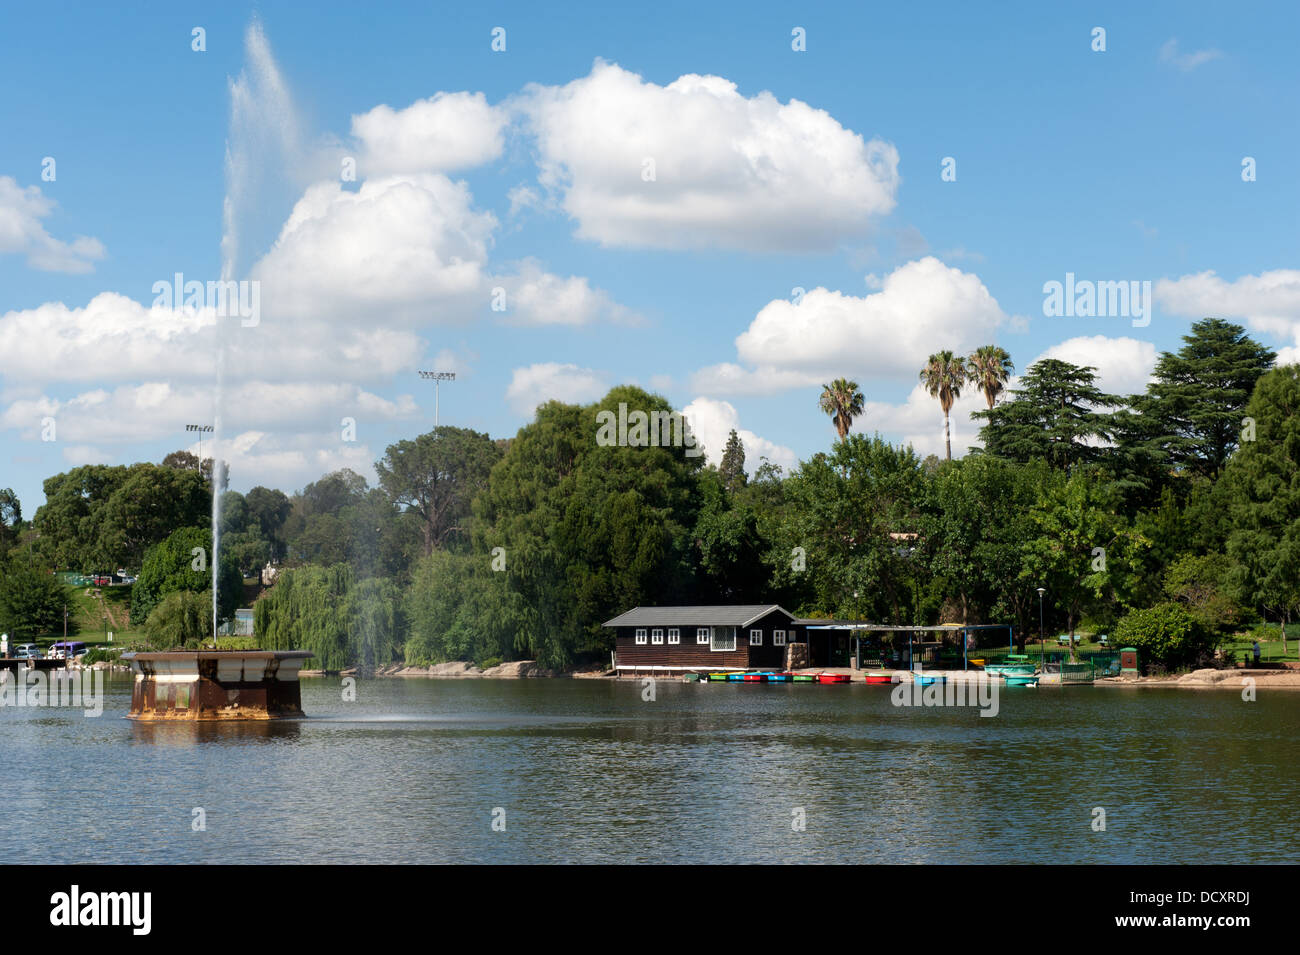 Zoo lake, Johannesburg, South Africa - Stock Image